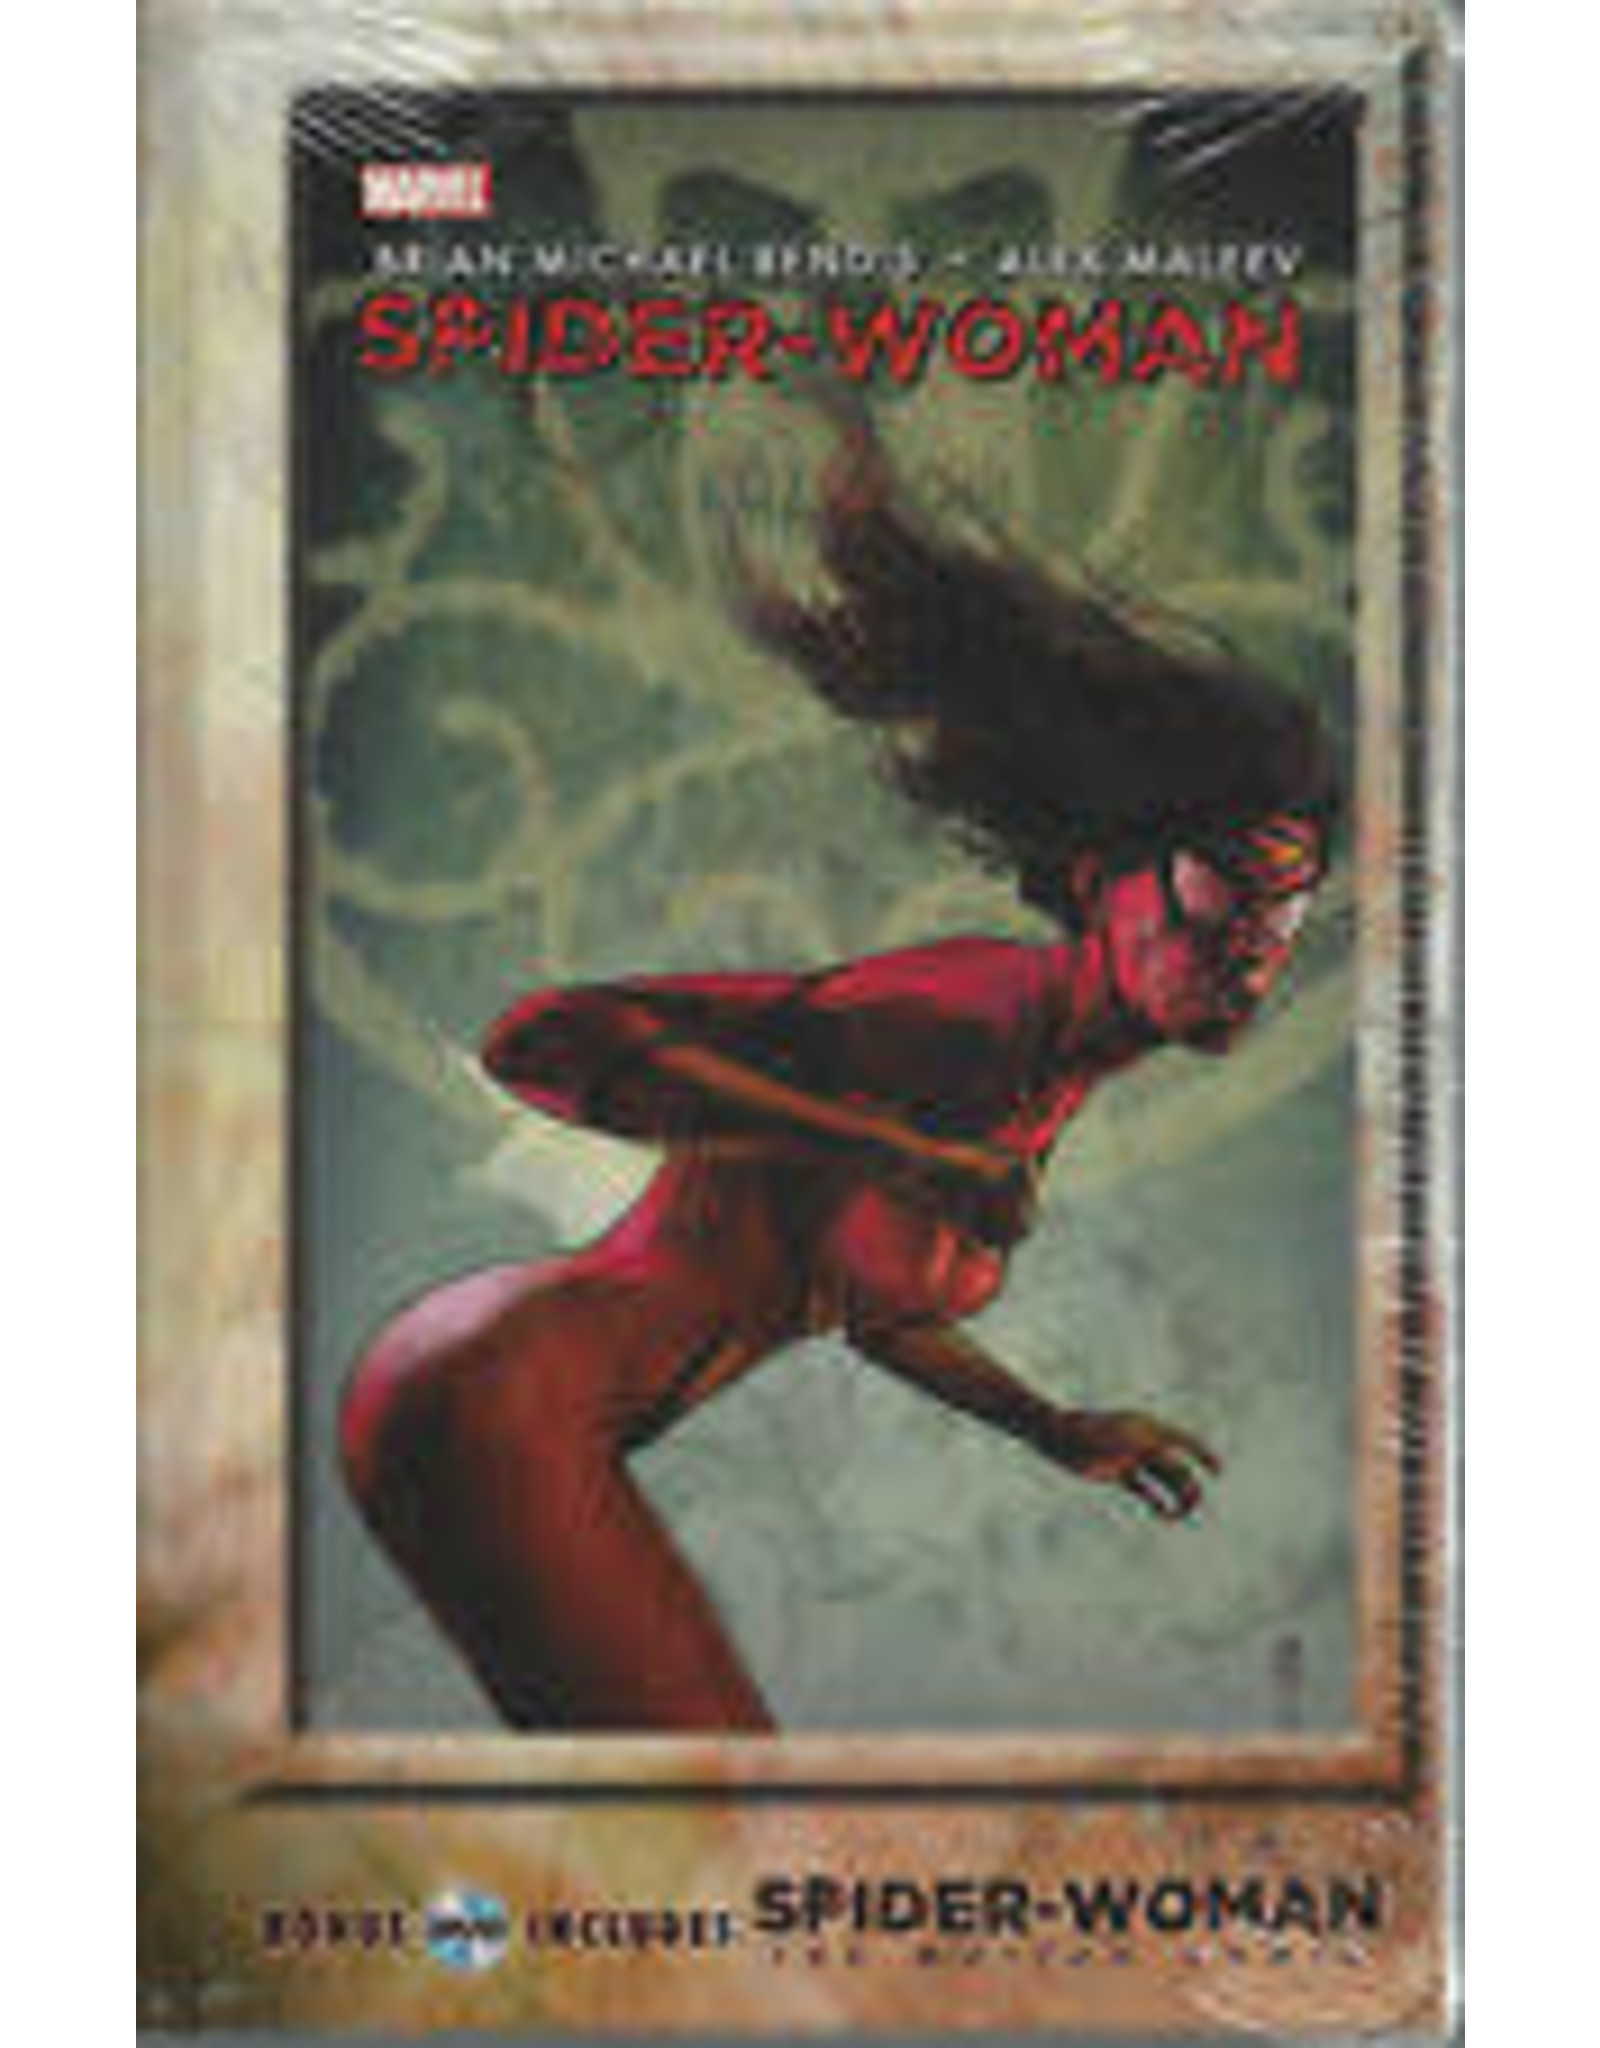 MARVEL COMICS SPIDER-WOMAN HC AGENT OF SWORD GN W/ MOTION DVD